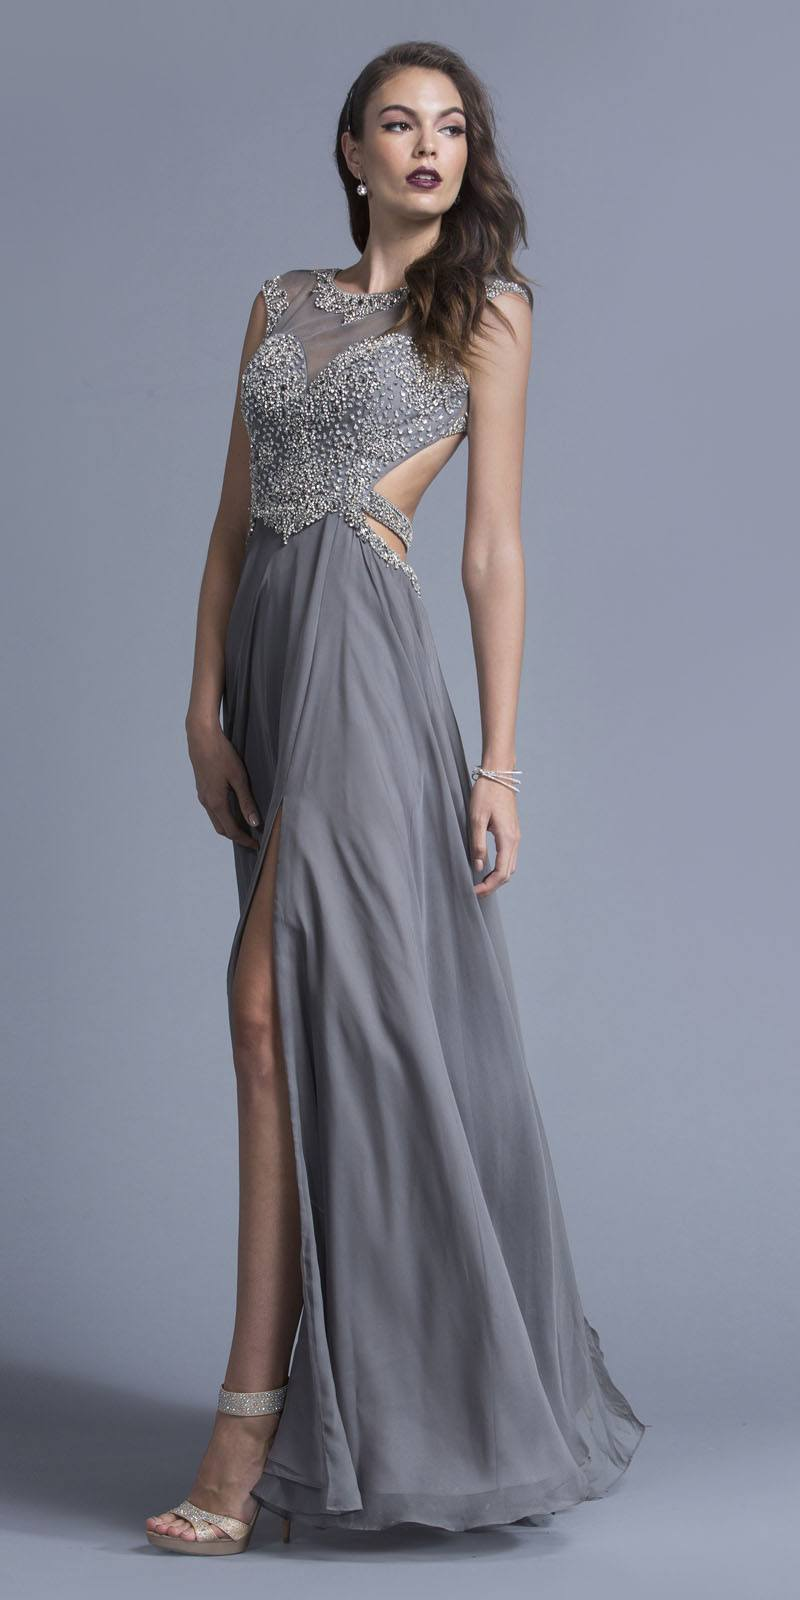 f4b5c9f37f1 Gray A-line Beaded Long Prom Dress Cut-Out Back with Slit. Tap to expand